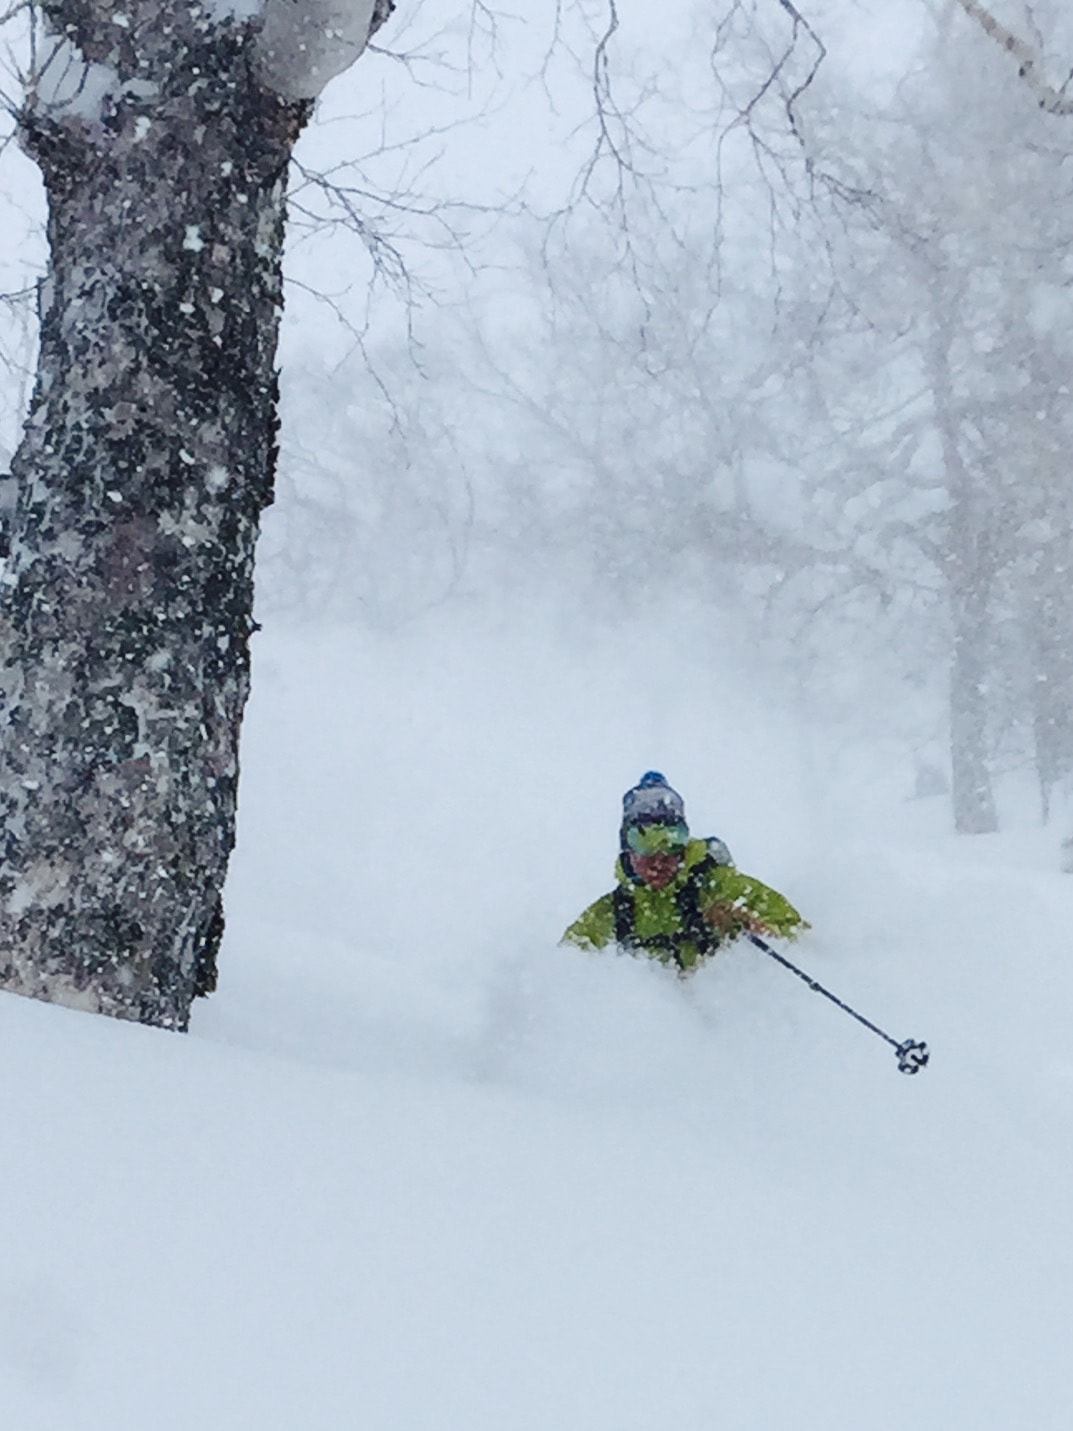 Colorado Mountain School Guide Dave Wolf skiing in deep powder in the backcountry of Hokkaido, Japan